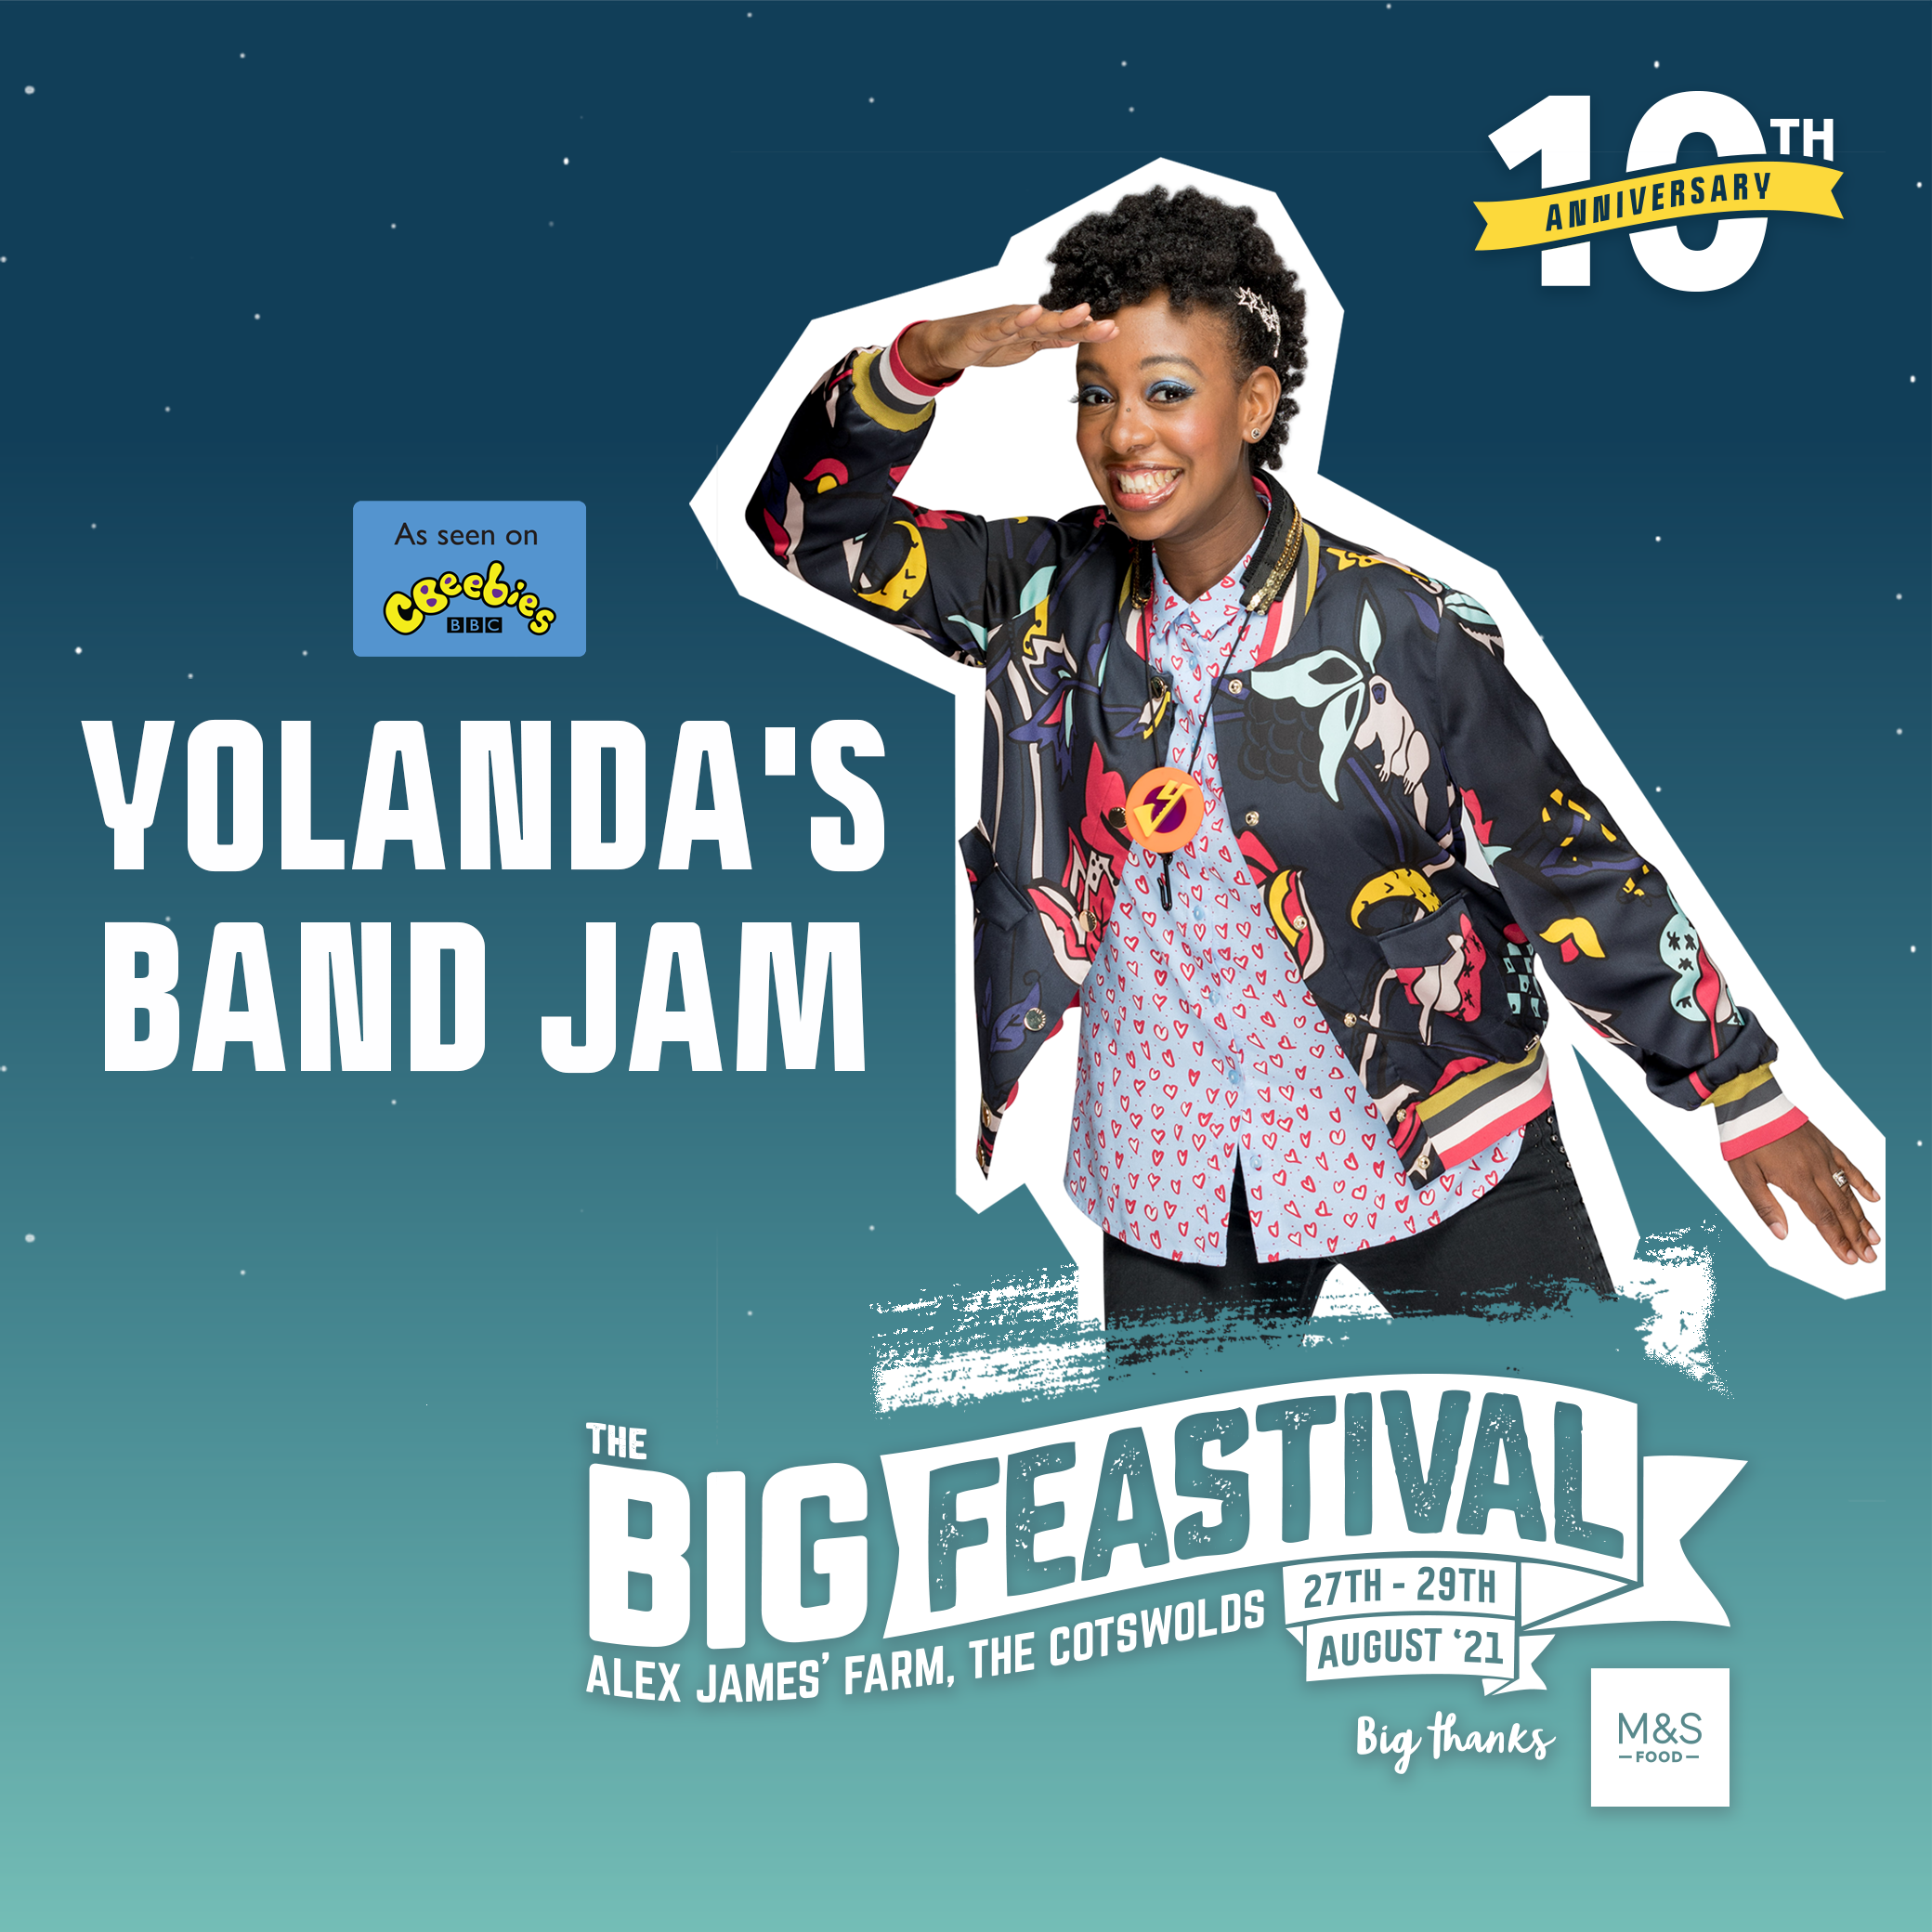 Big Feastival: NEW names added to our Friday full of festival fun! 9